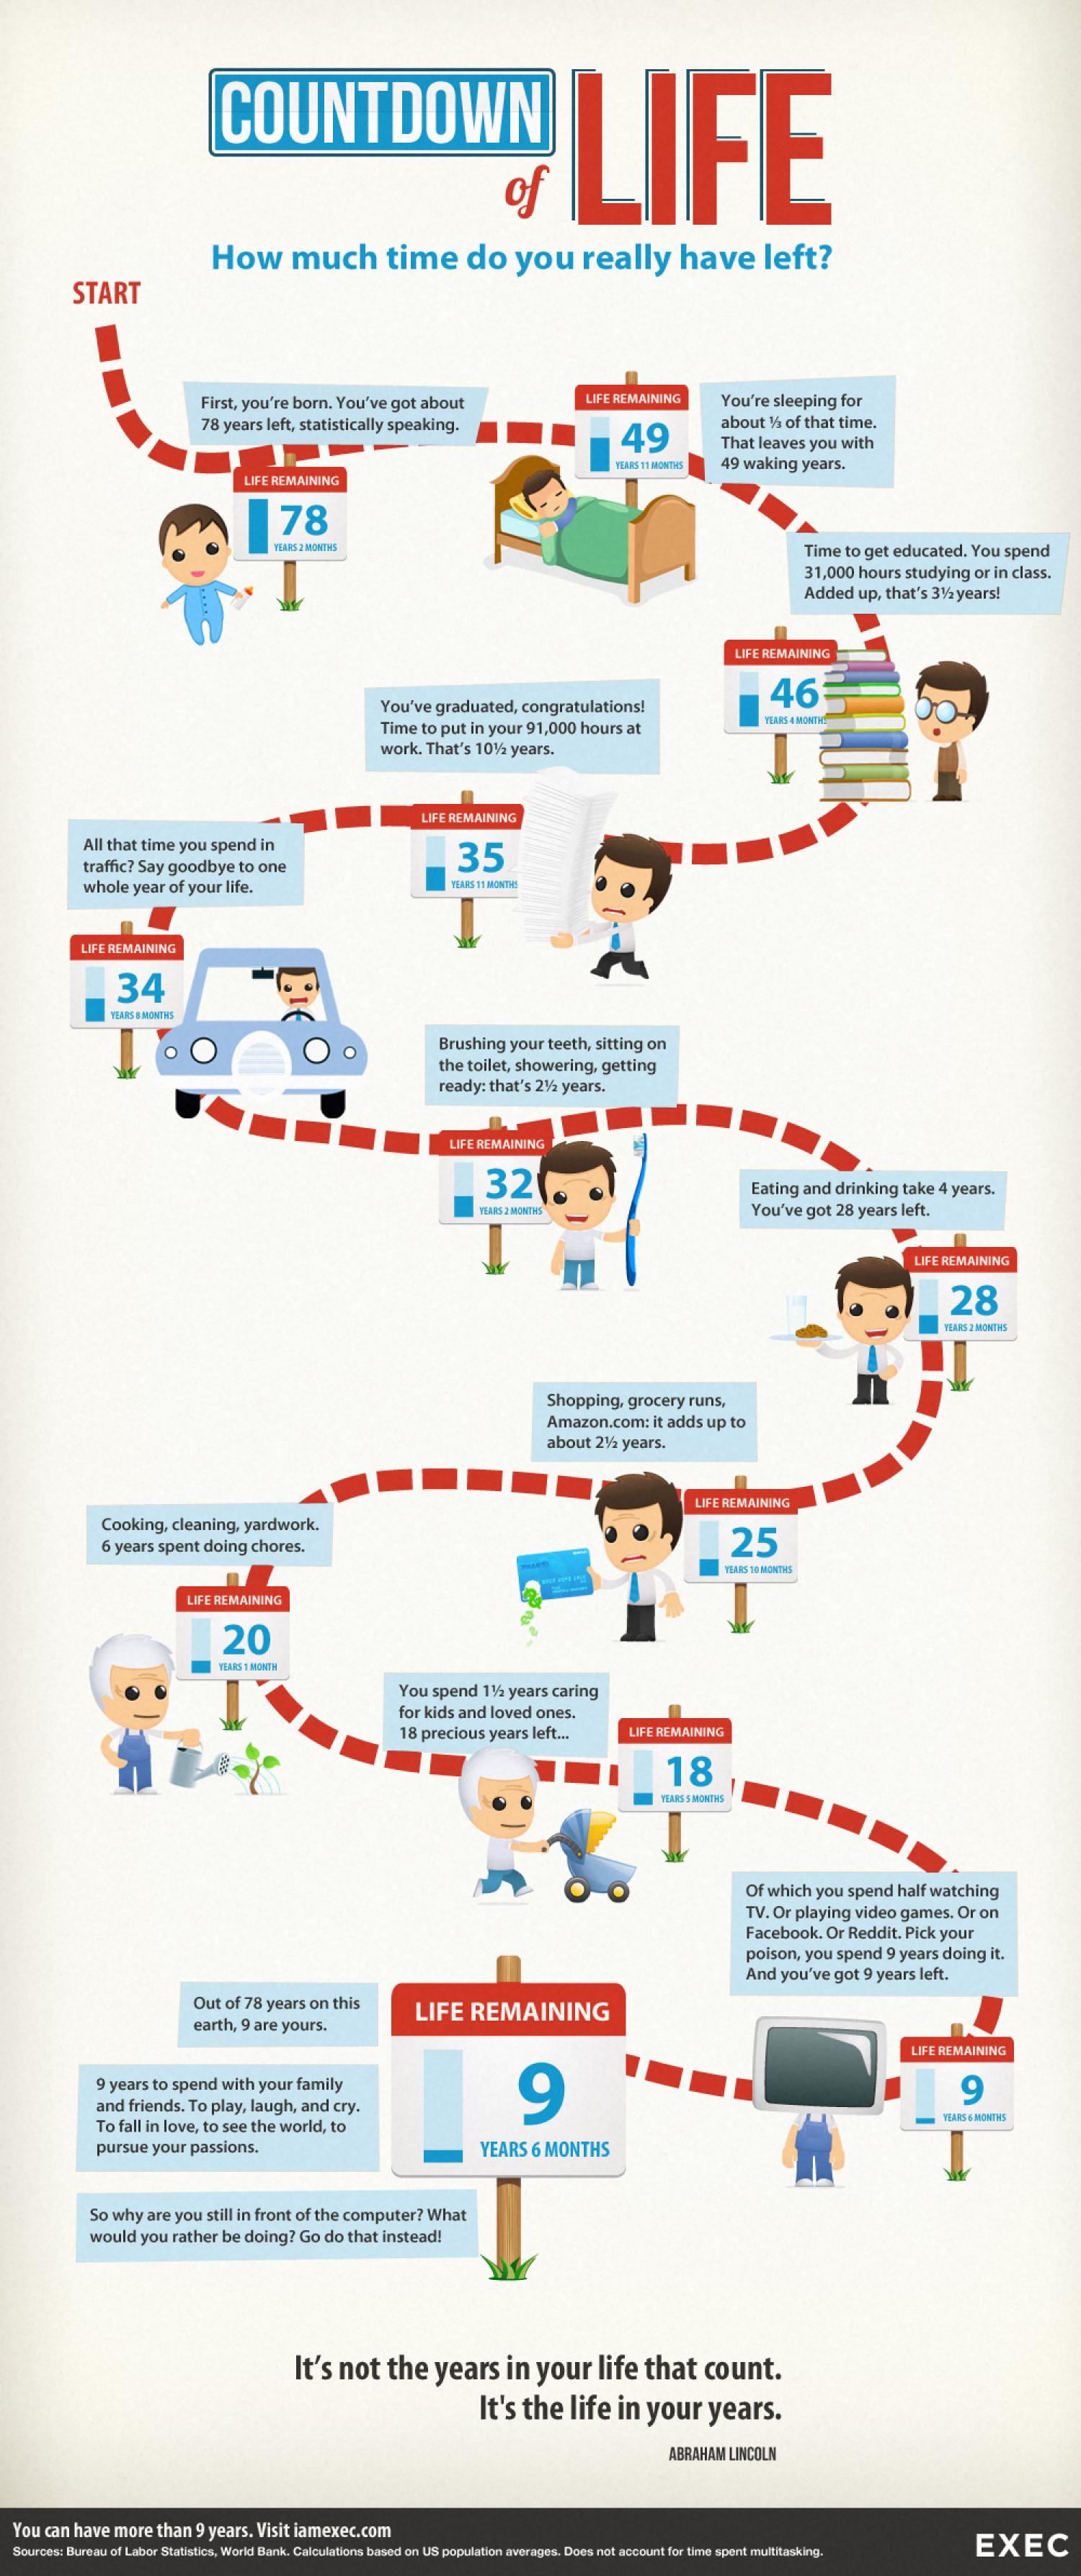 Countdown of Life: How much time do you really have left? Infographic